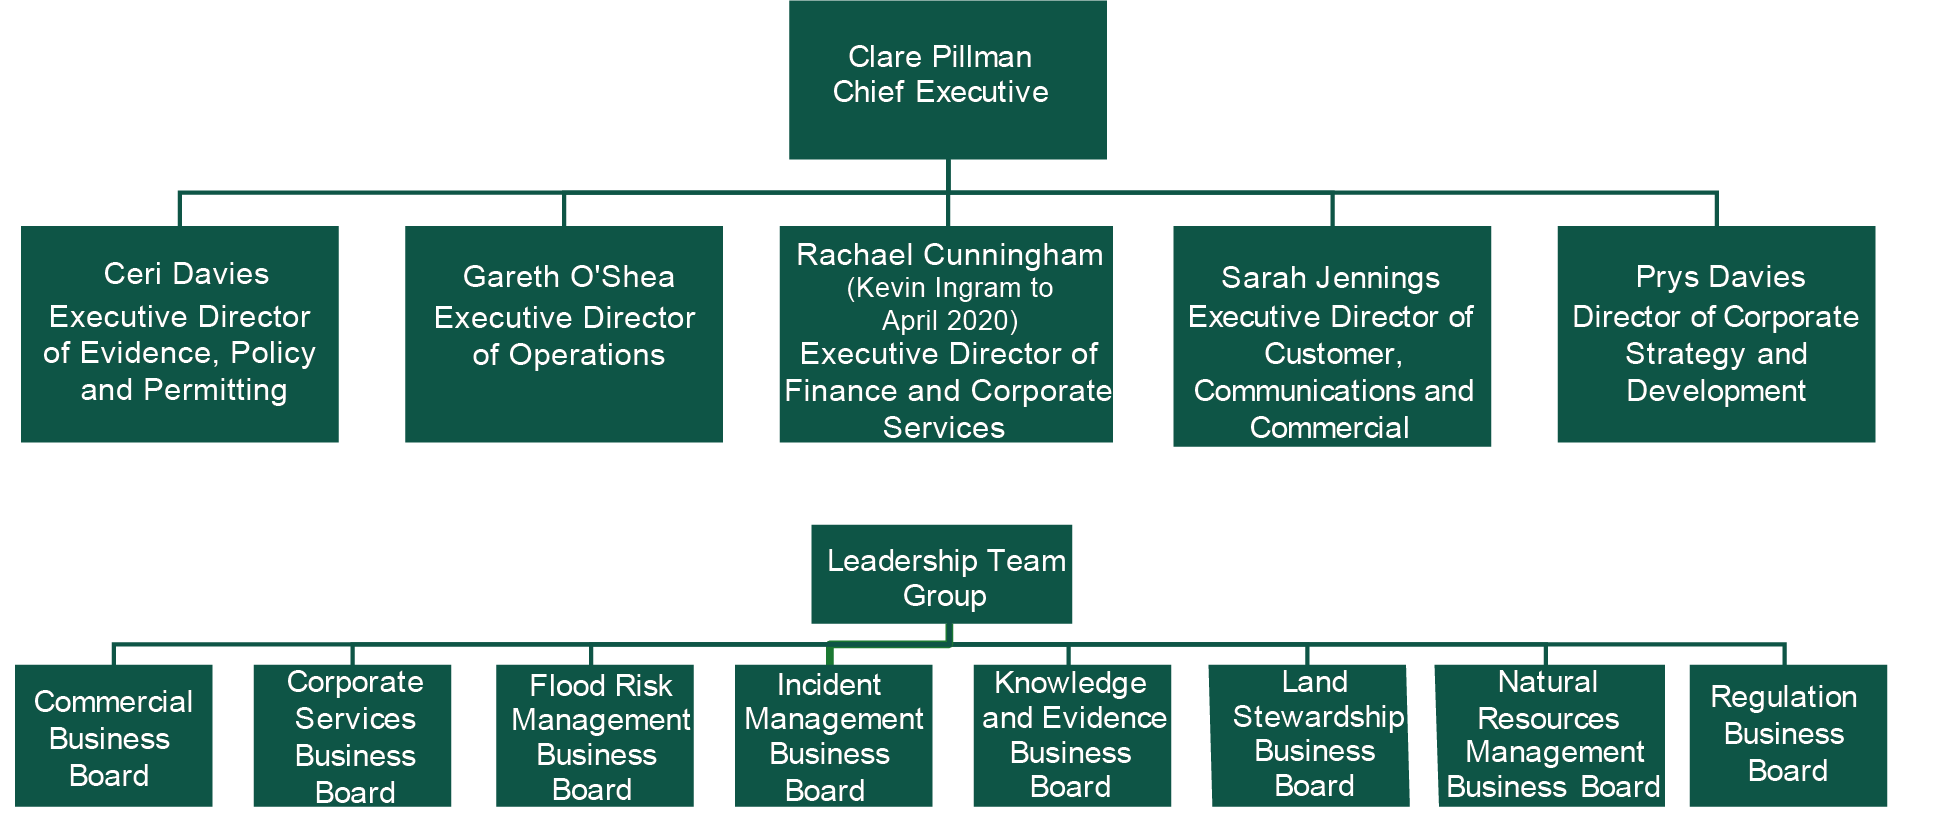 Our executive structure diagram. Details explianed in surrounding text.